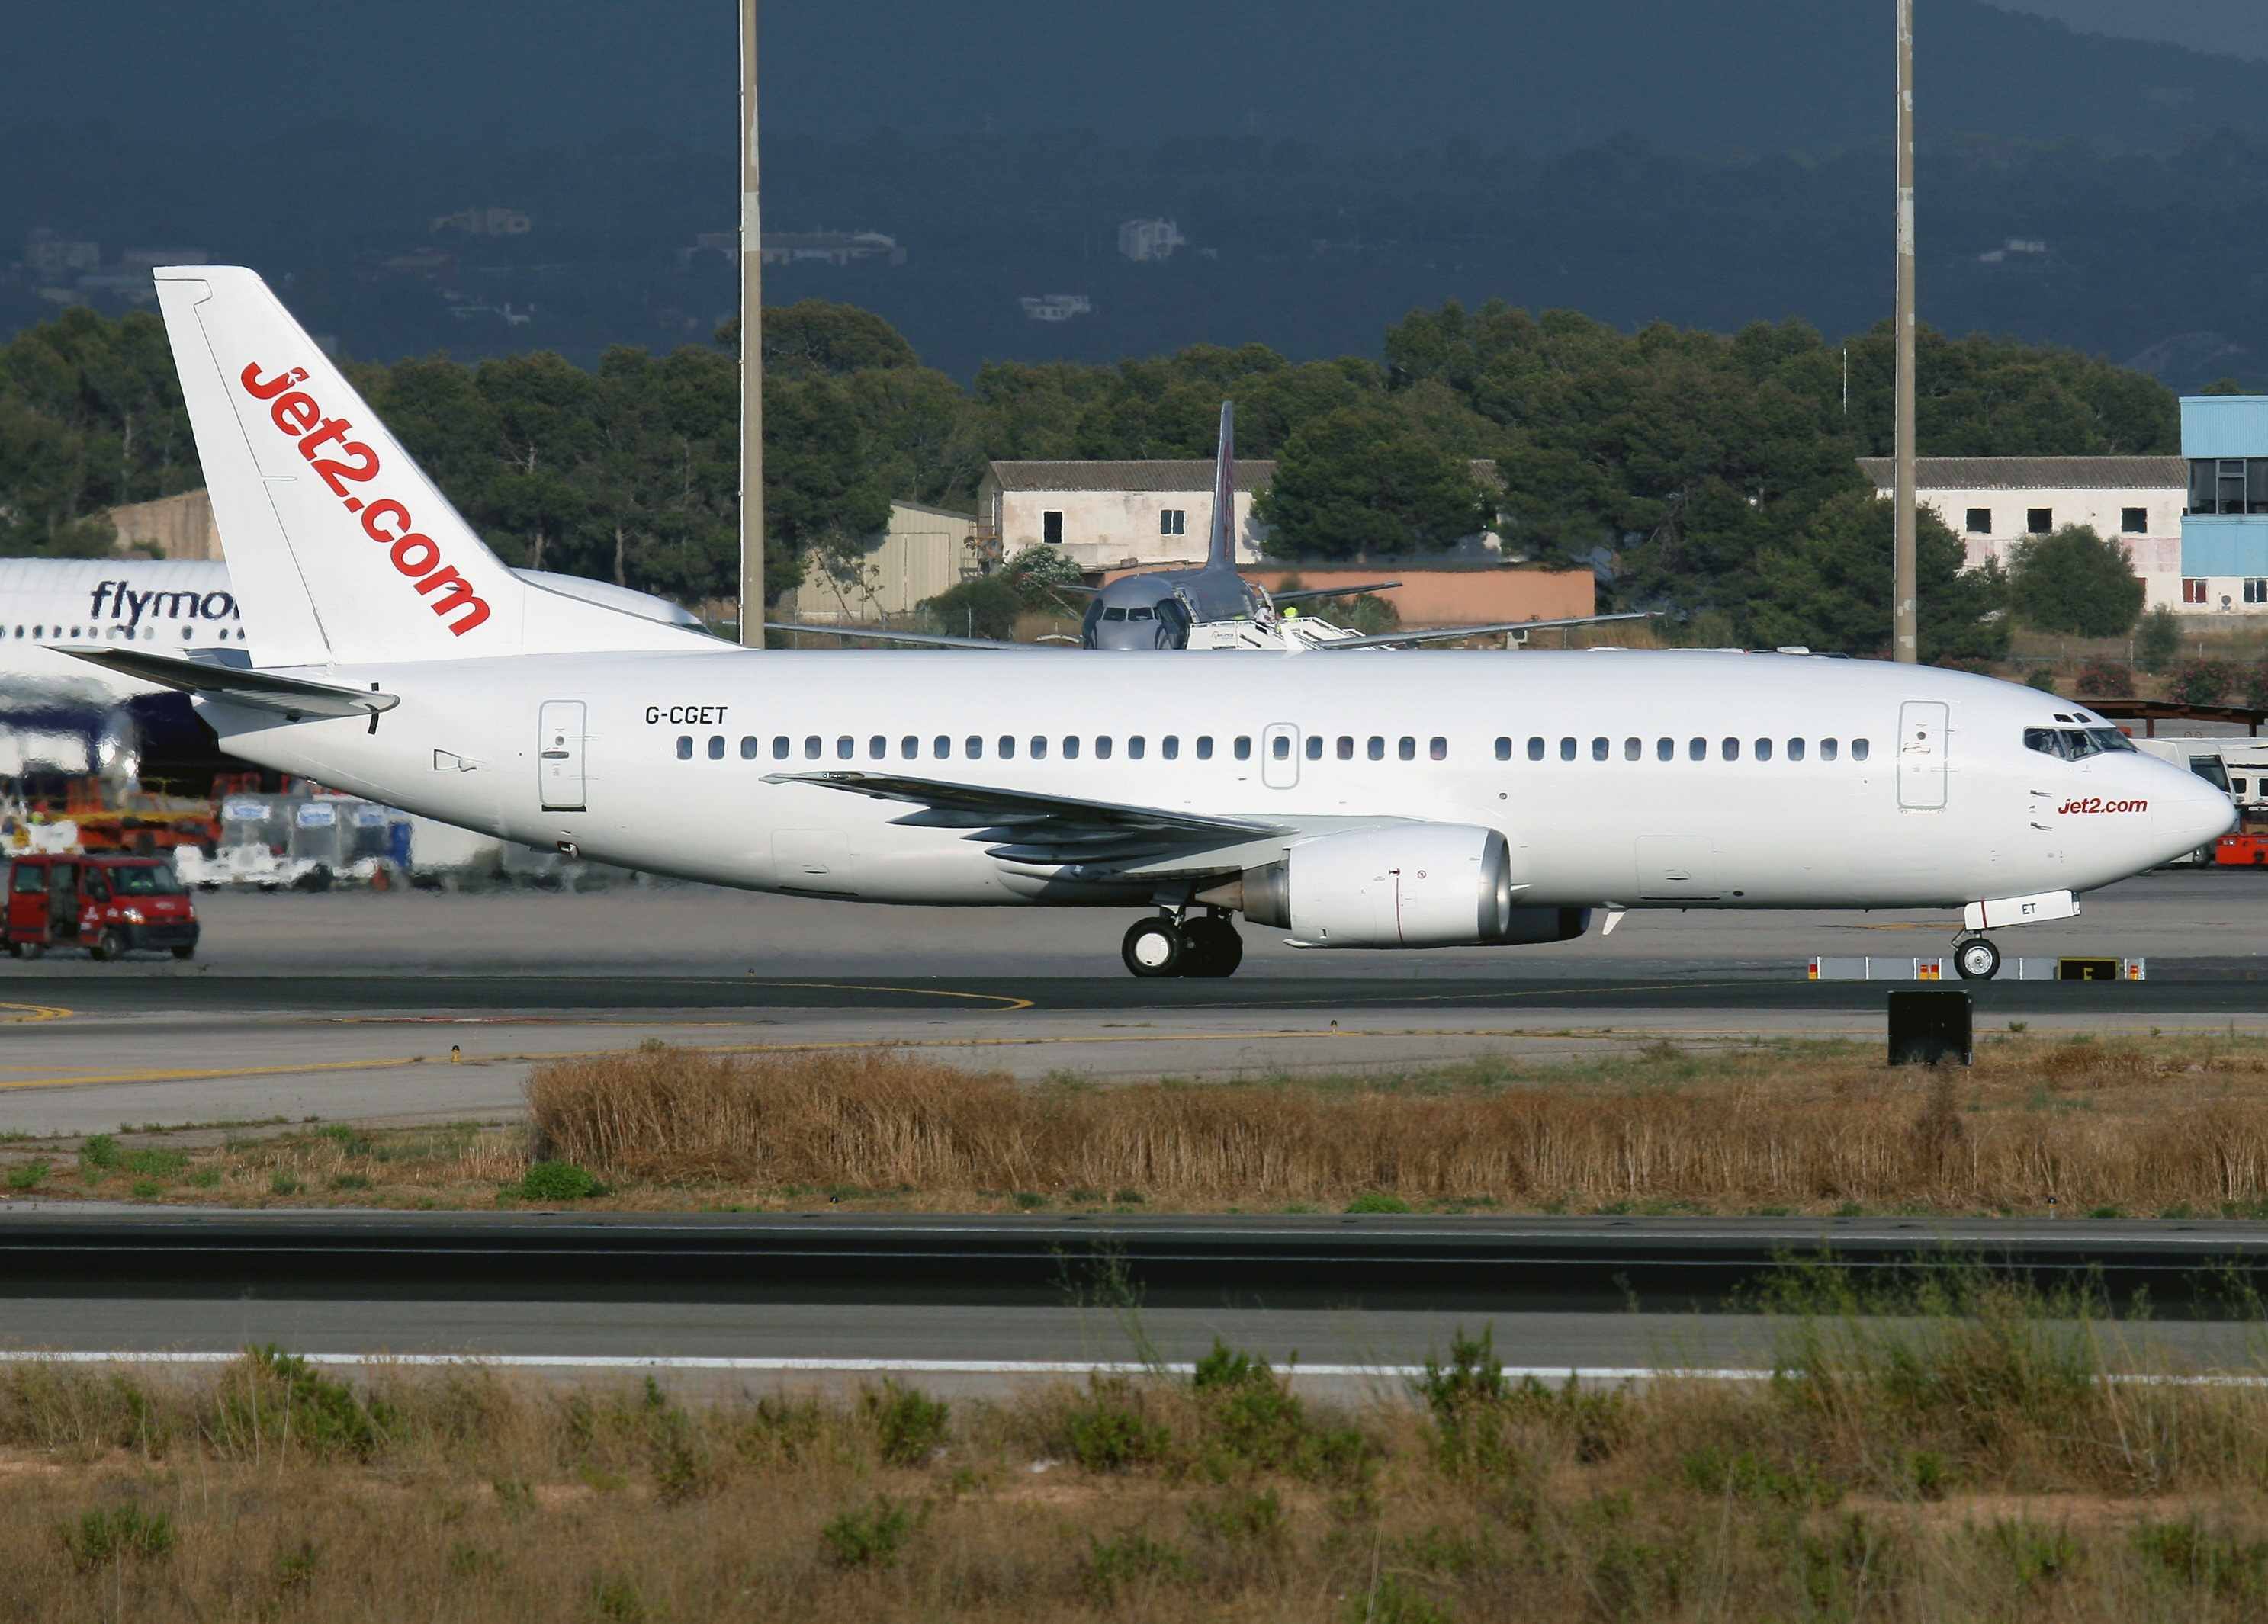 G-CGET is pictured on the ground at Palma de Mallorca in a basic all-white condition.  Copyright Photo: Javier Rodriguez.